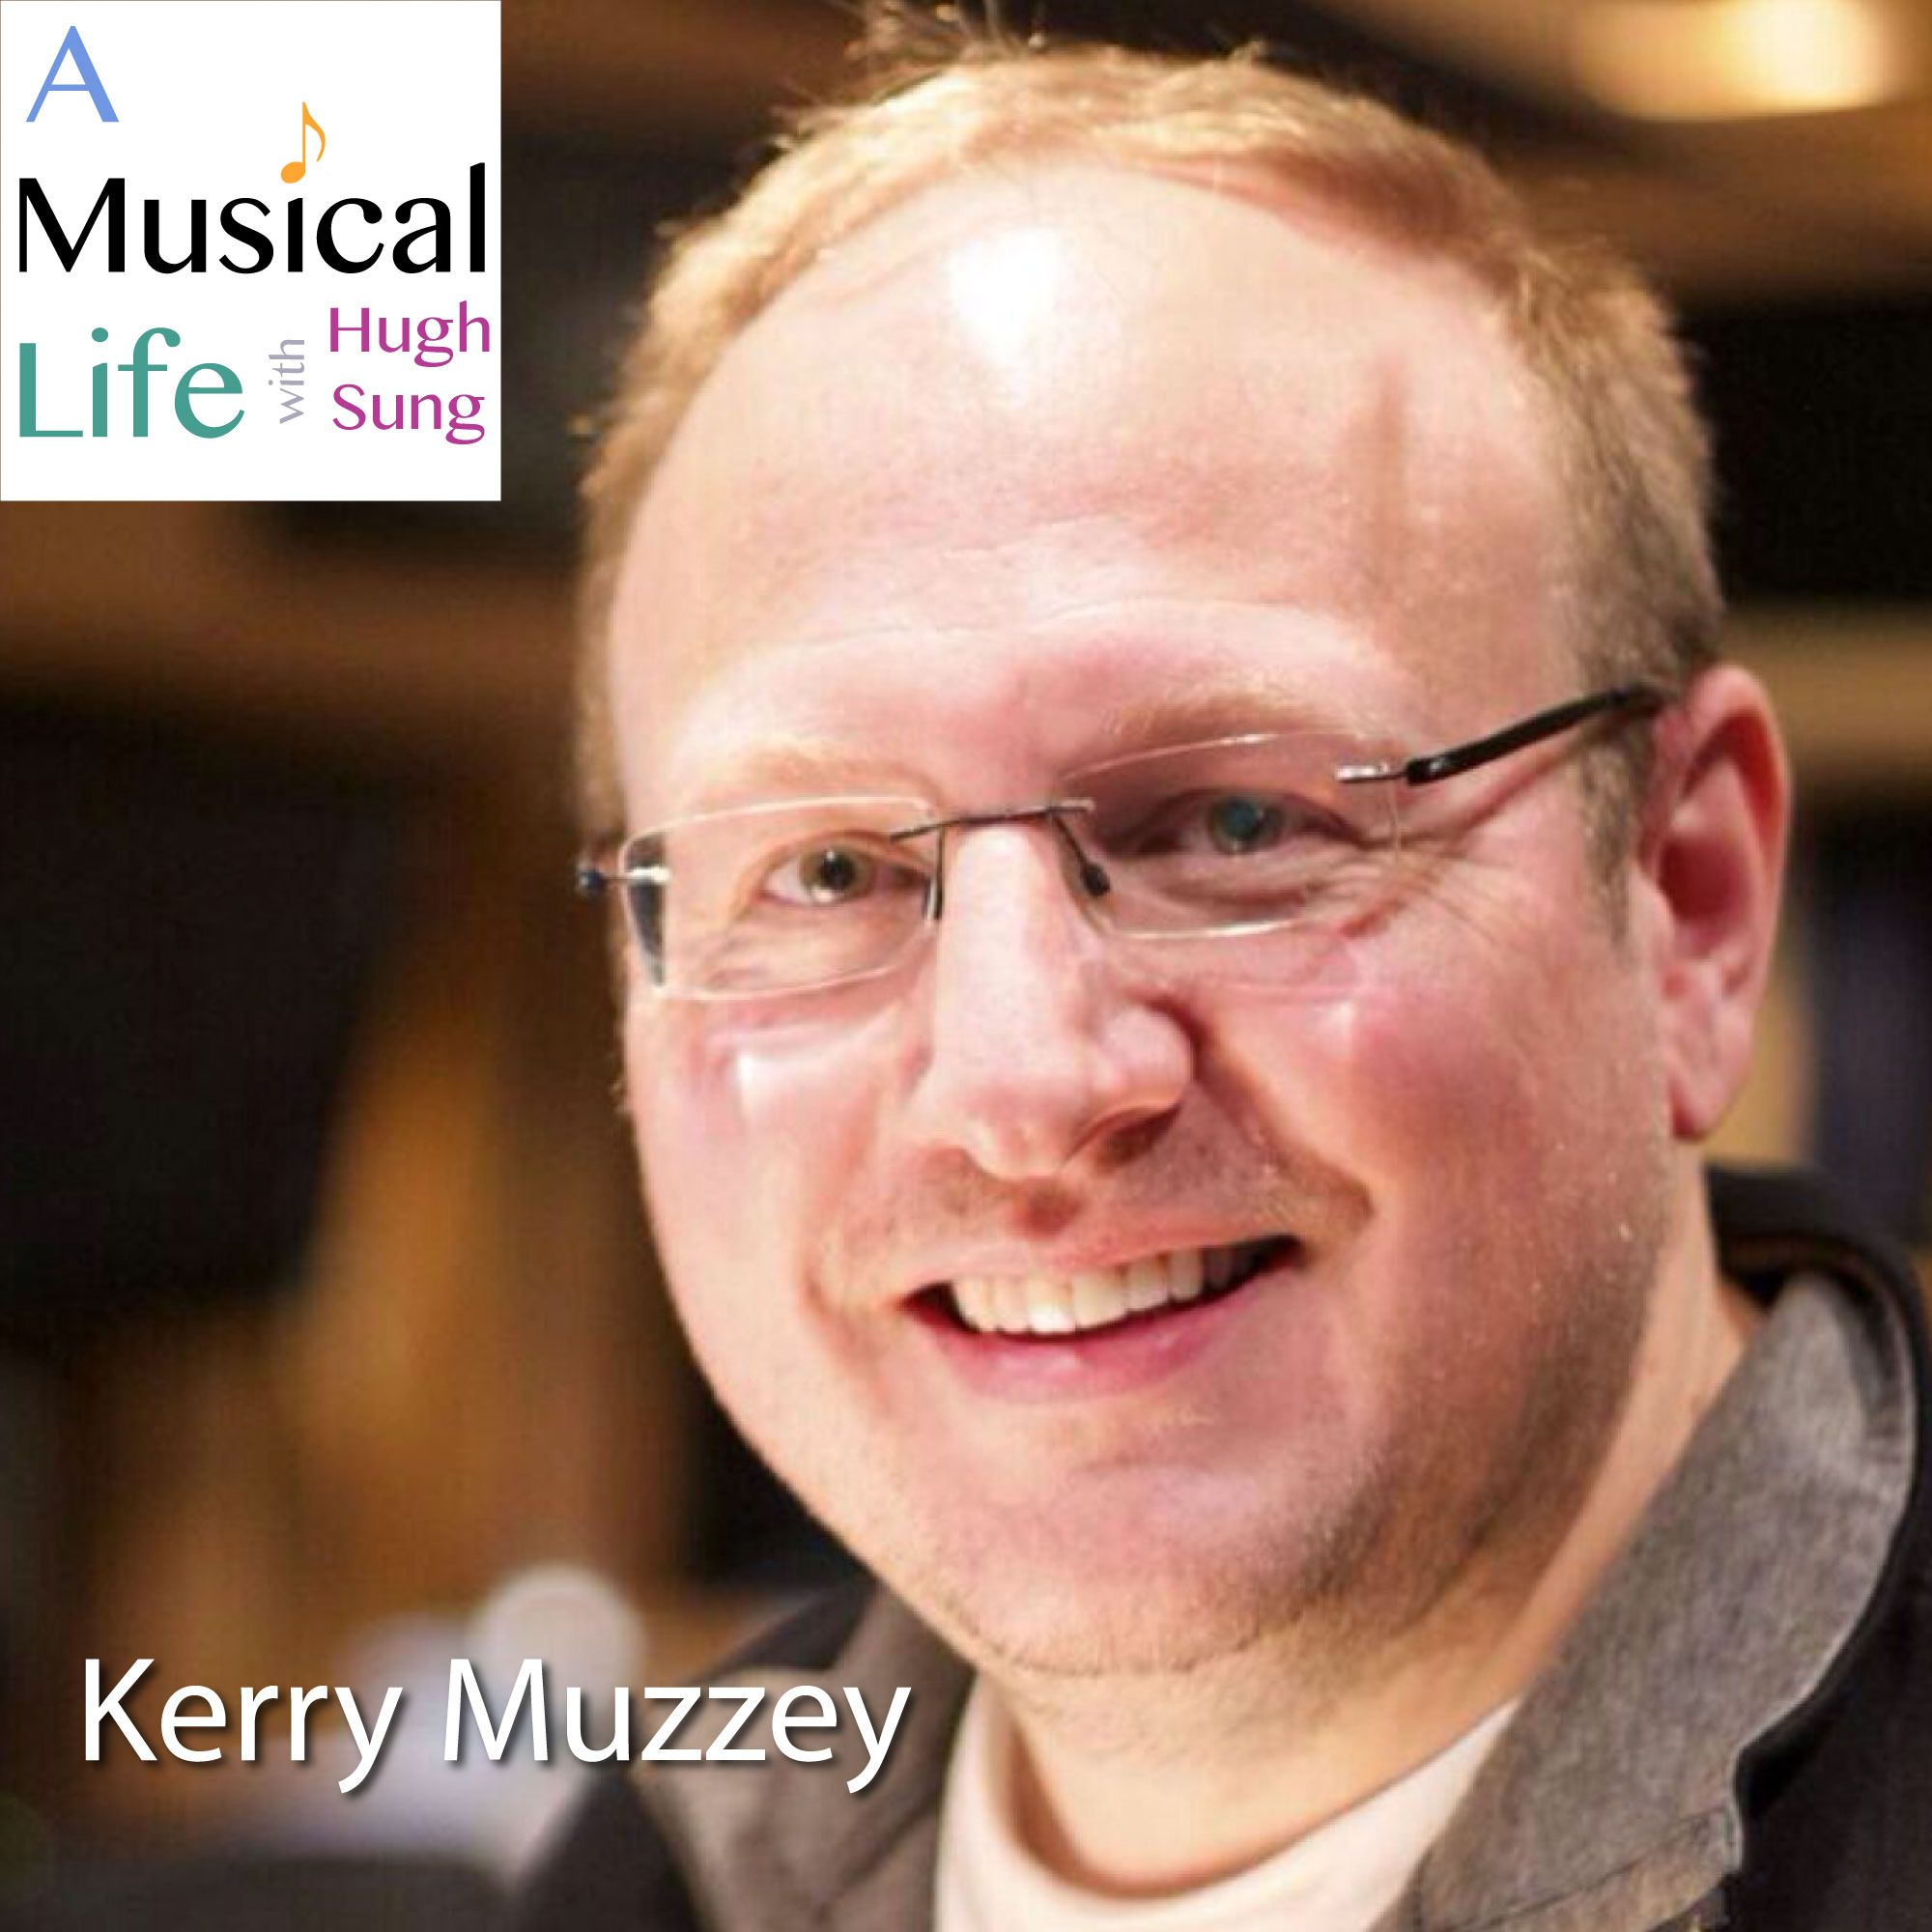 """Kerry Muzzey, modern classical and film composer for """"The Seer"""", a new documentary by director Laura Dunn and executive producers Robert Redford and Terrence Malick that just premiered at the 2016 SXSW film festival."""